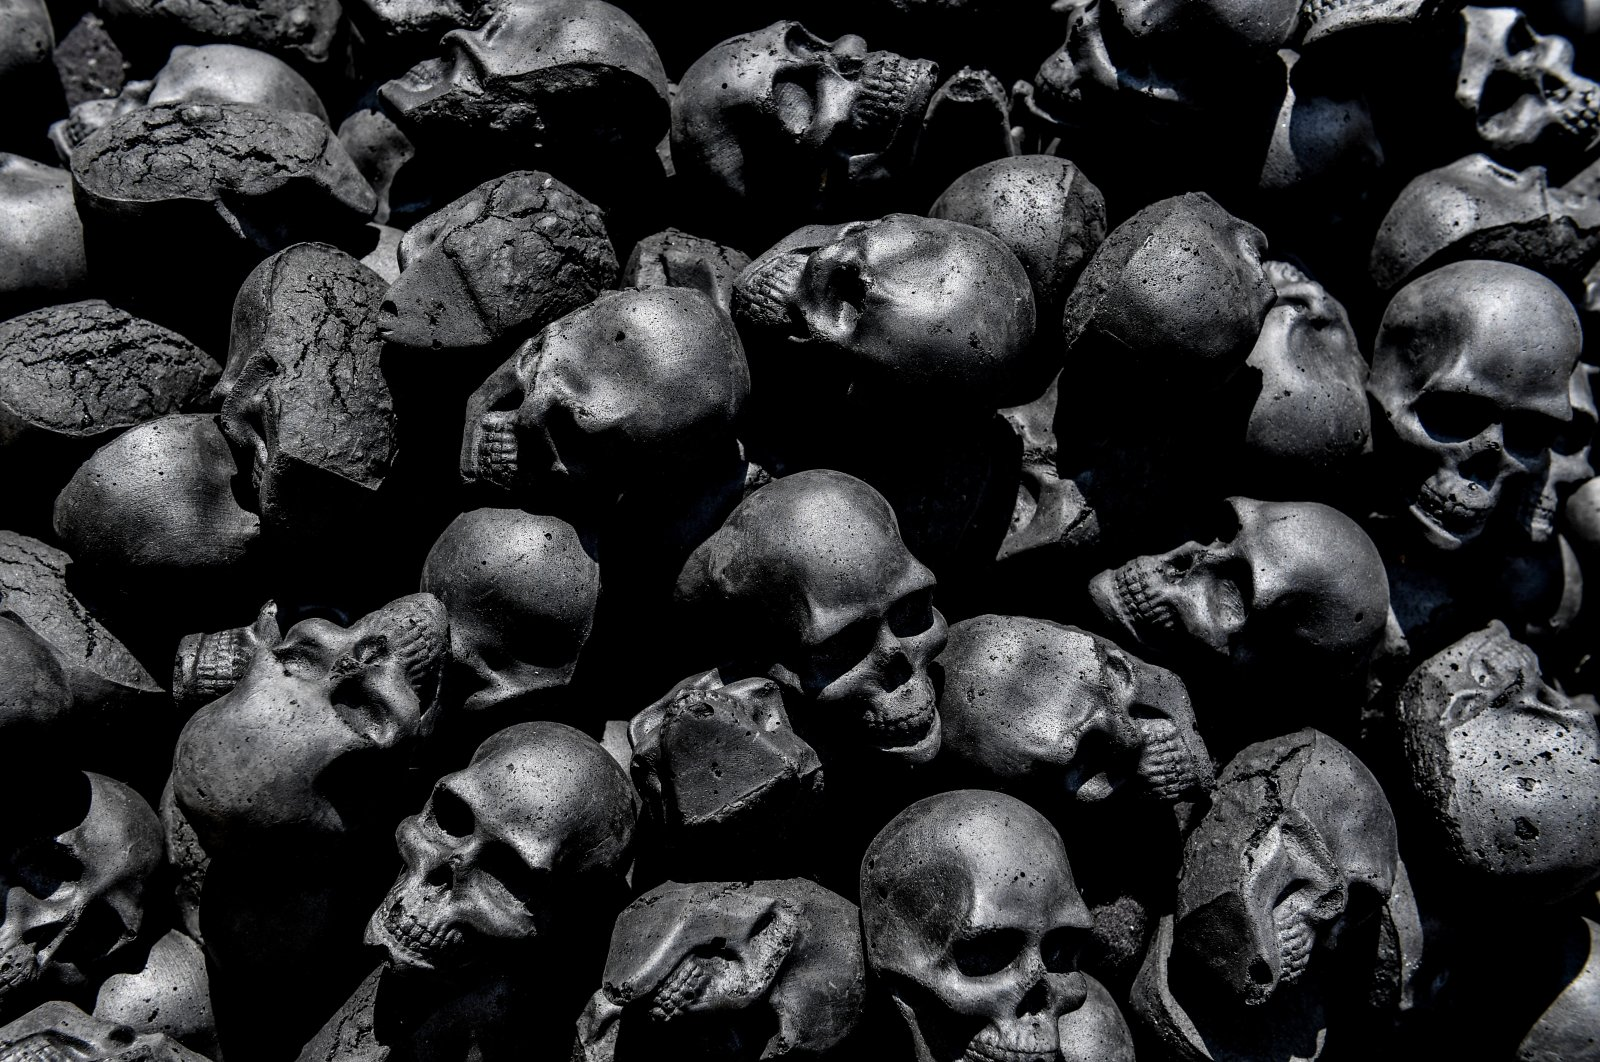 Black skulls made from coal displayed during a Victorian picnic at the Clara Zetkin Park during a Gothic Meeting in Leipzig, Germany, June 7, 2019 (EPA Photo)